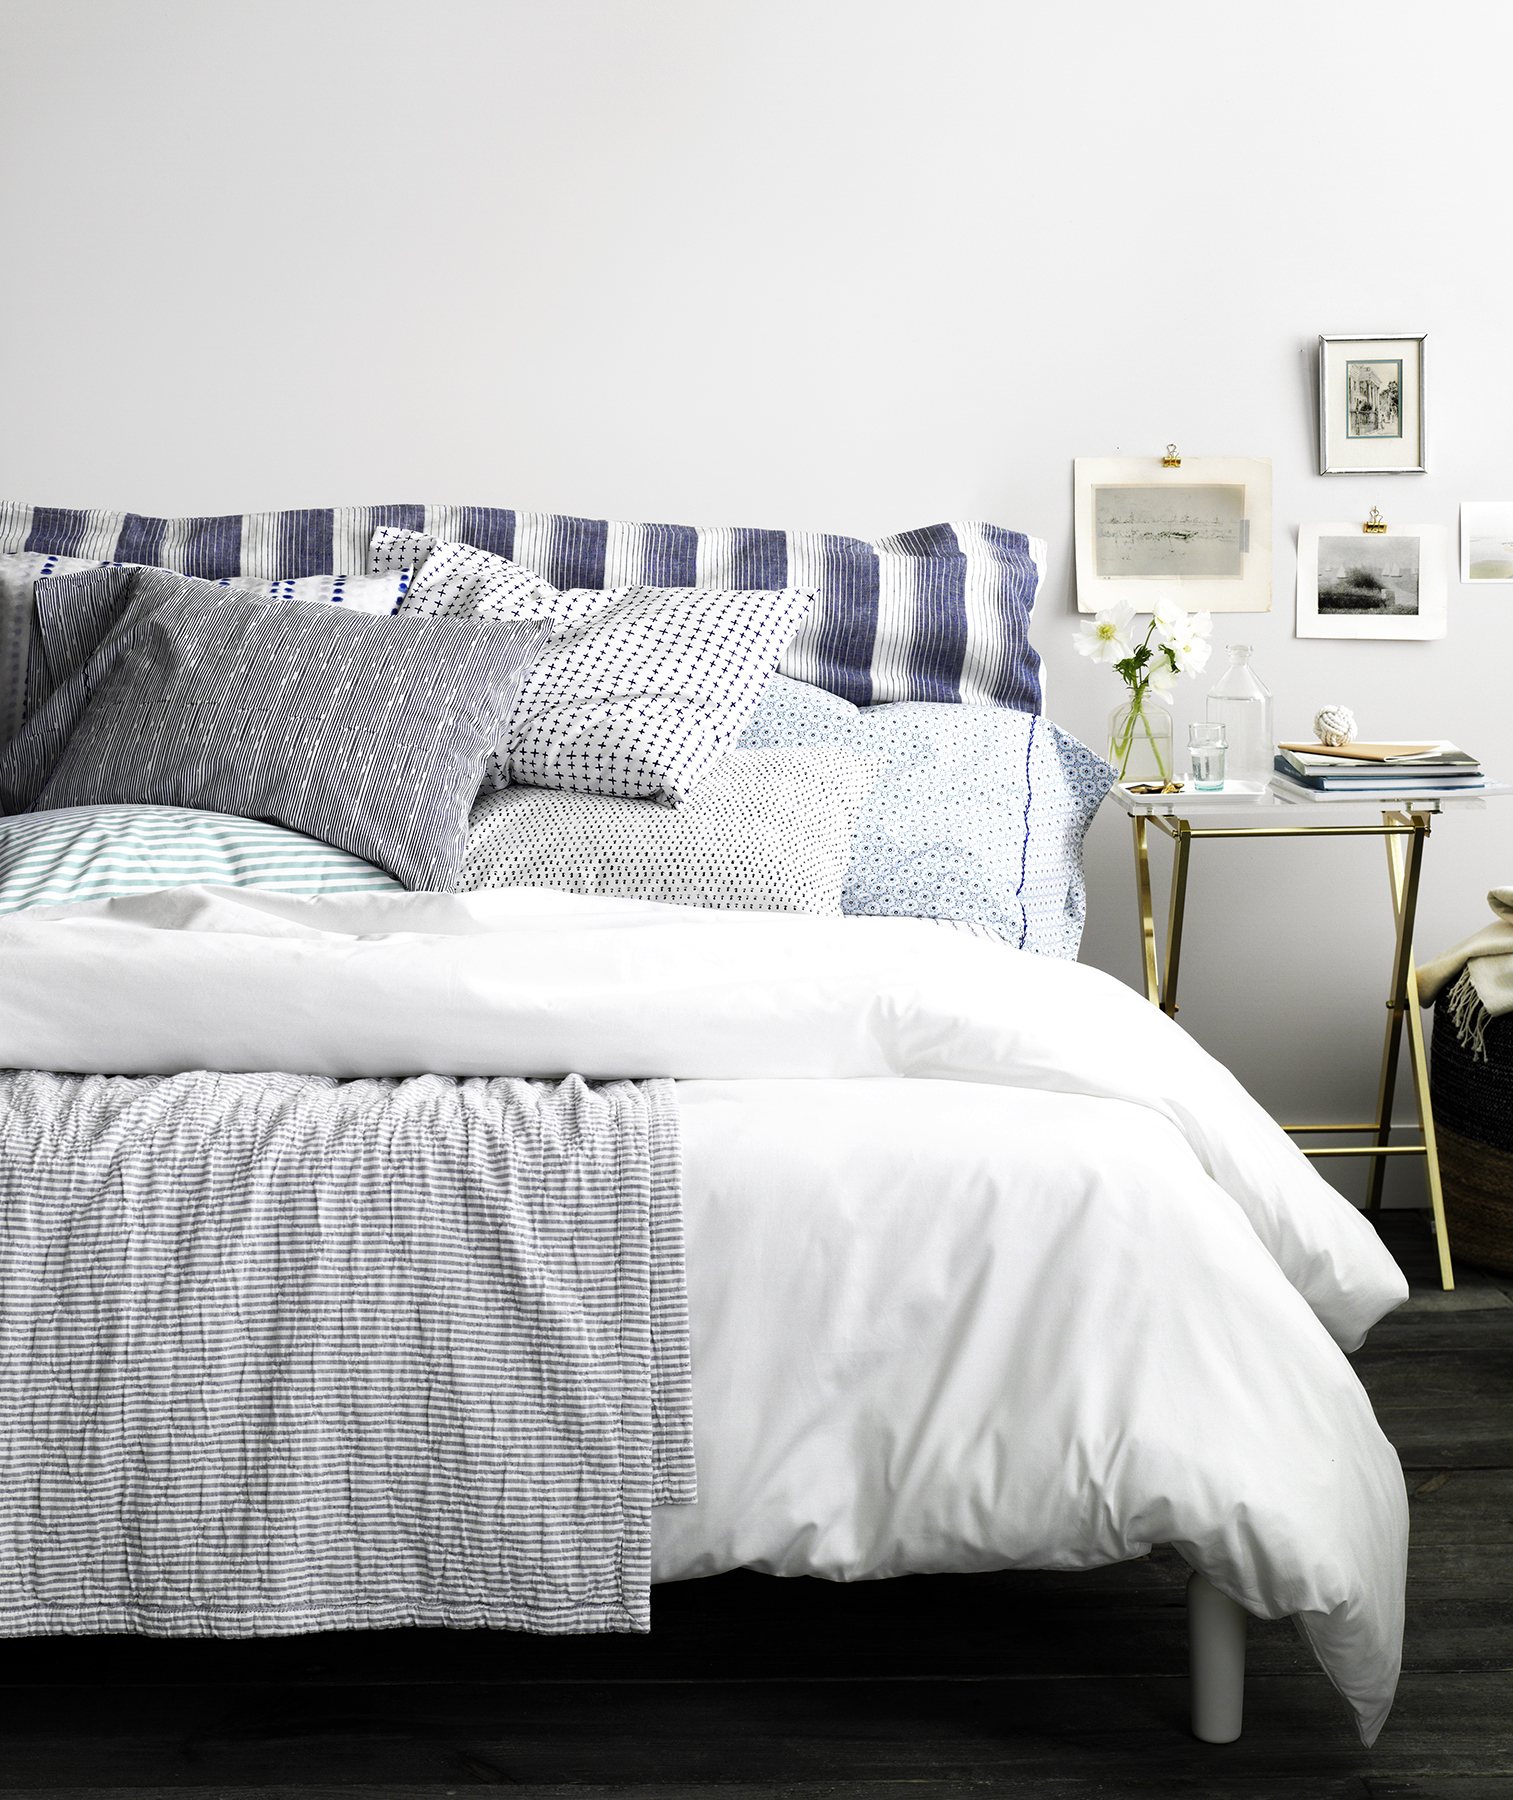 How To Decorate A Bedroom New On Images of Awesome